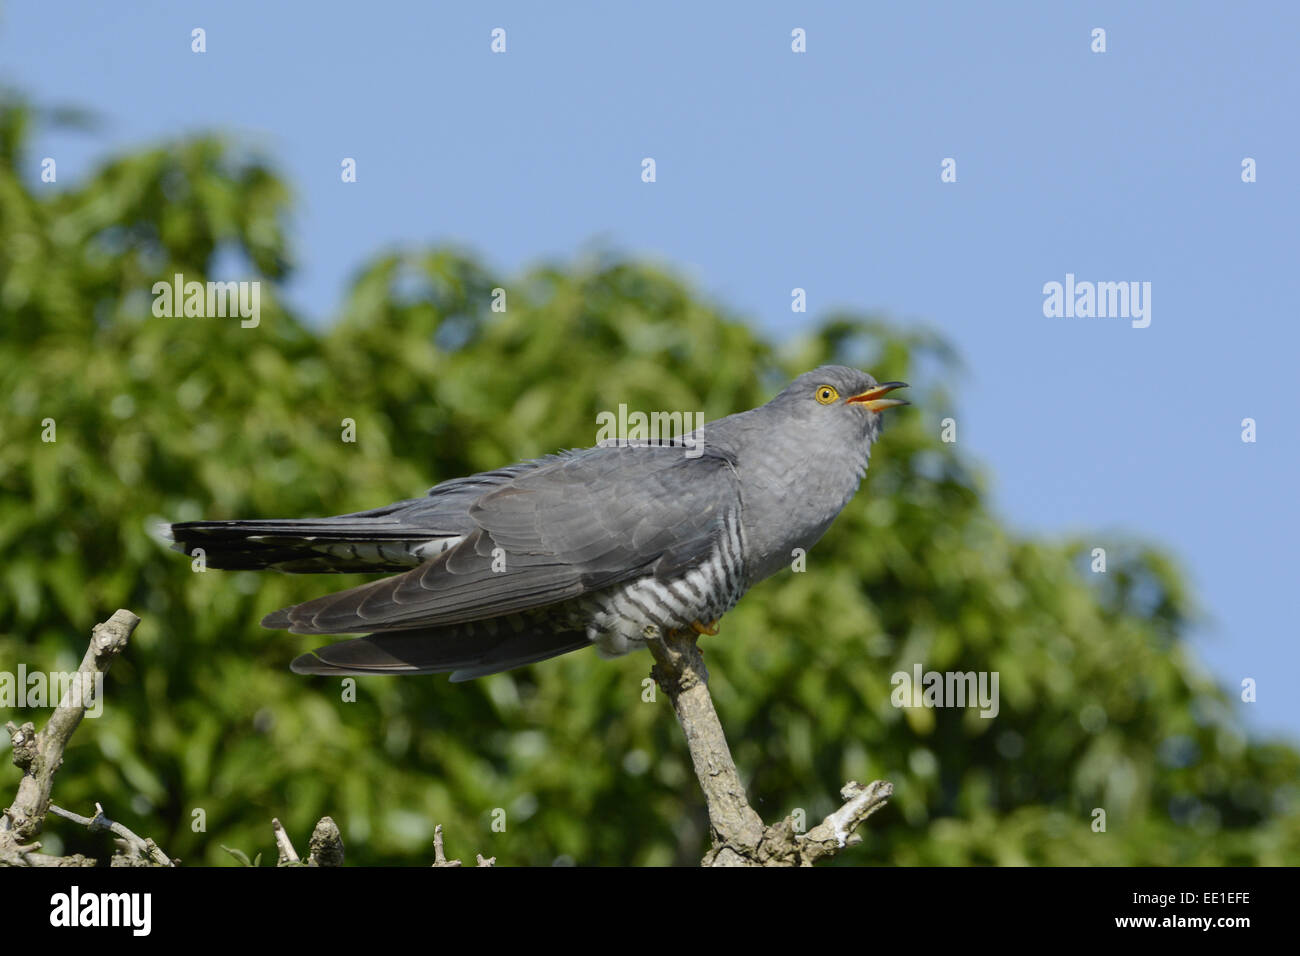 Common Cuckoo (Cuculus canorus) adult male, calling, perched on dead branch, Norfolk, England, June - Stock Image